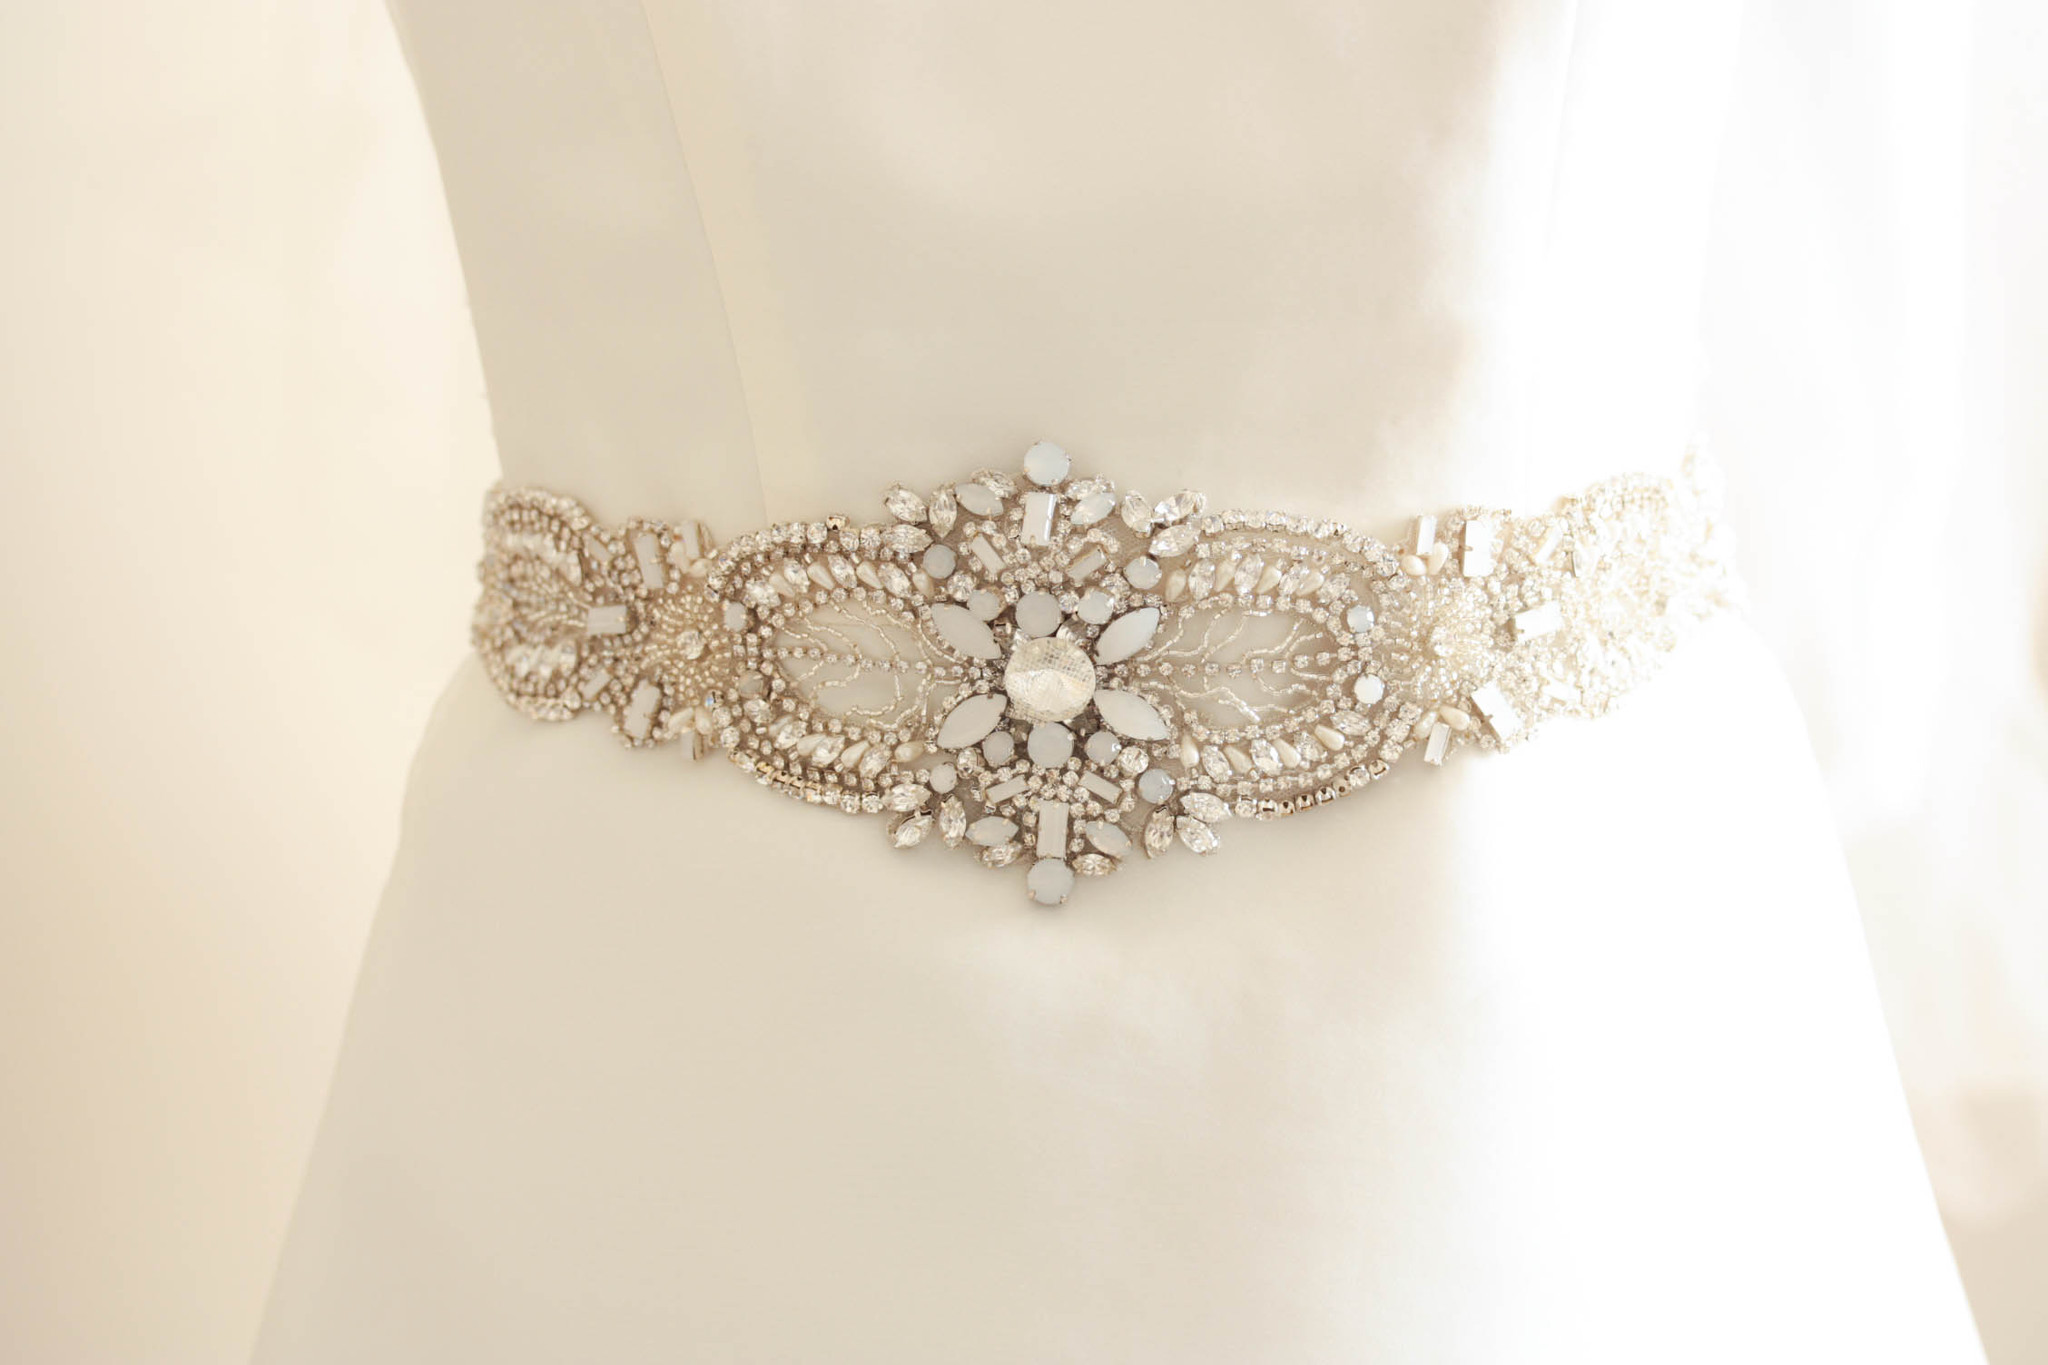 Wedding Bridal Sashes dress up with embellished bridal accessories belts playbuzz